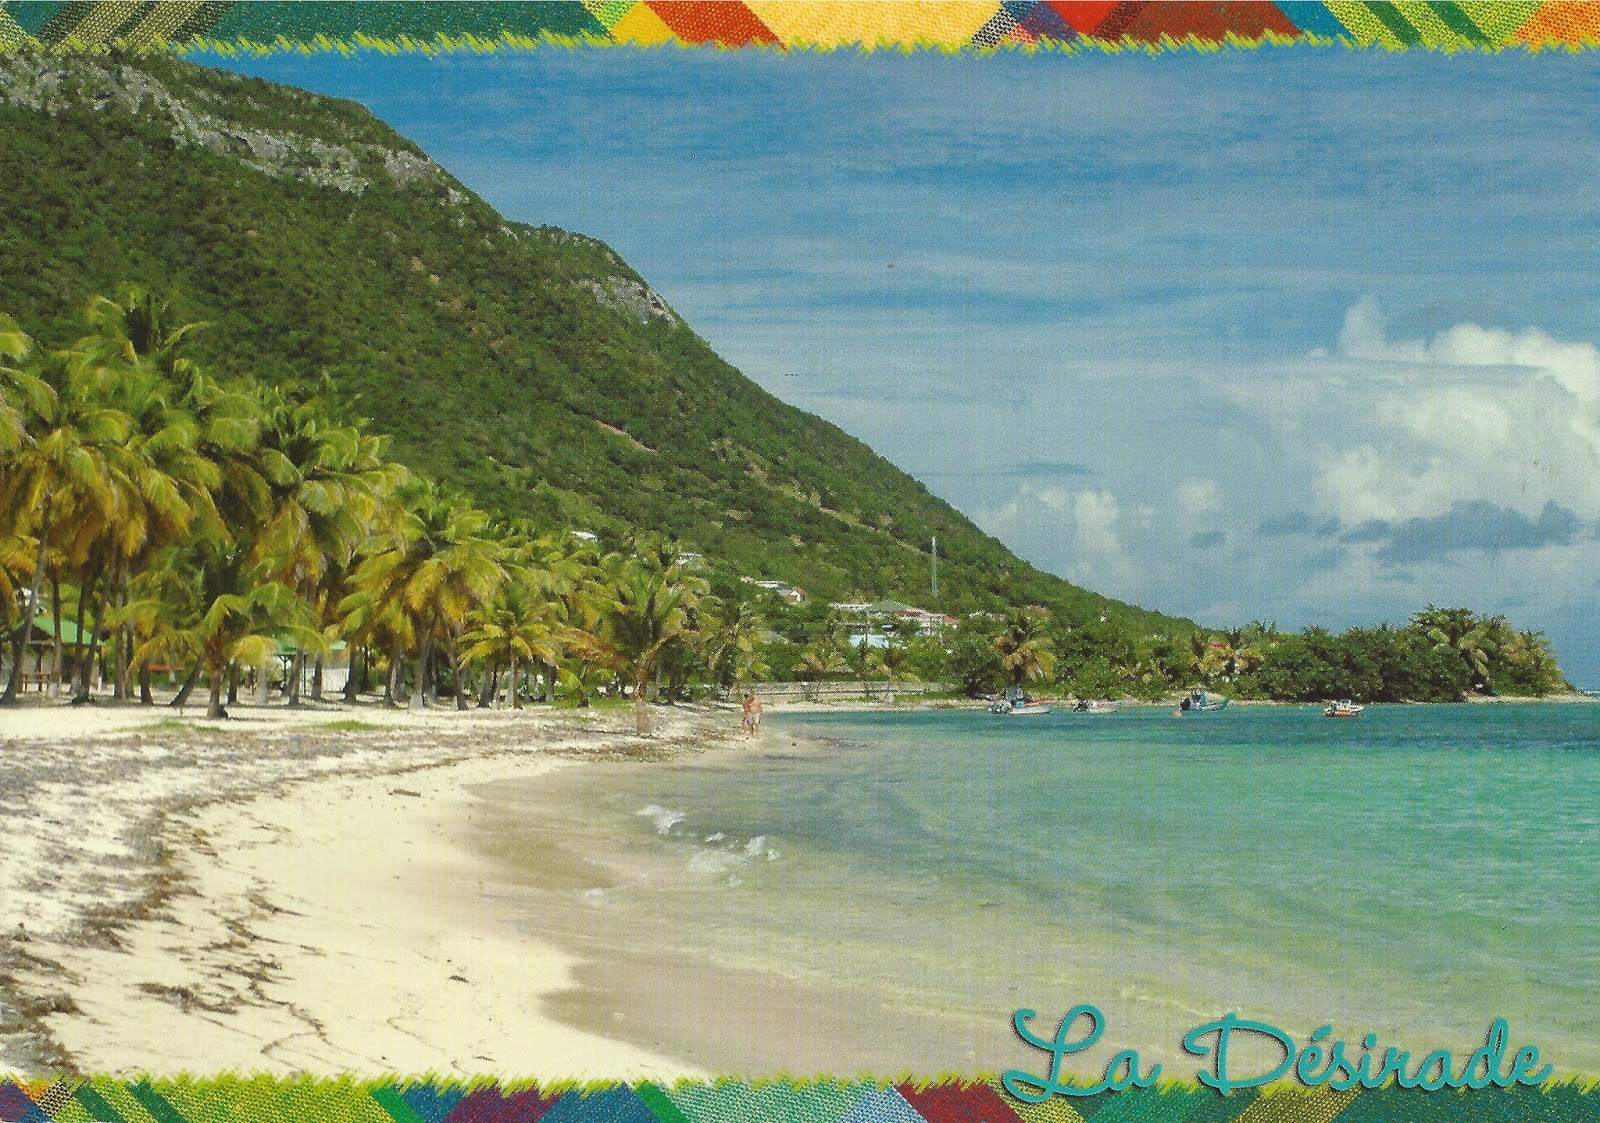 La Desirade, island of Guadeloupe